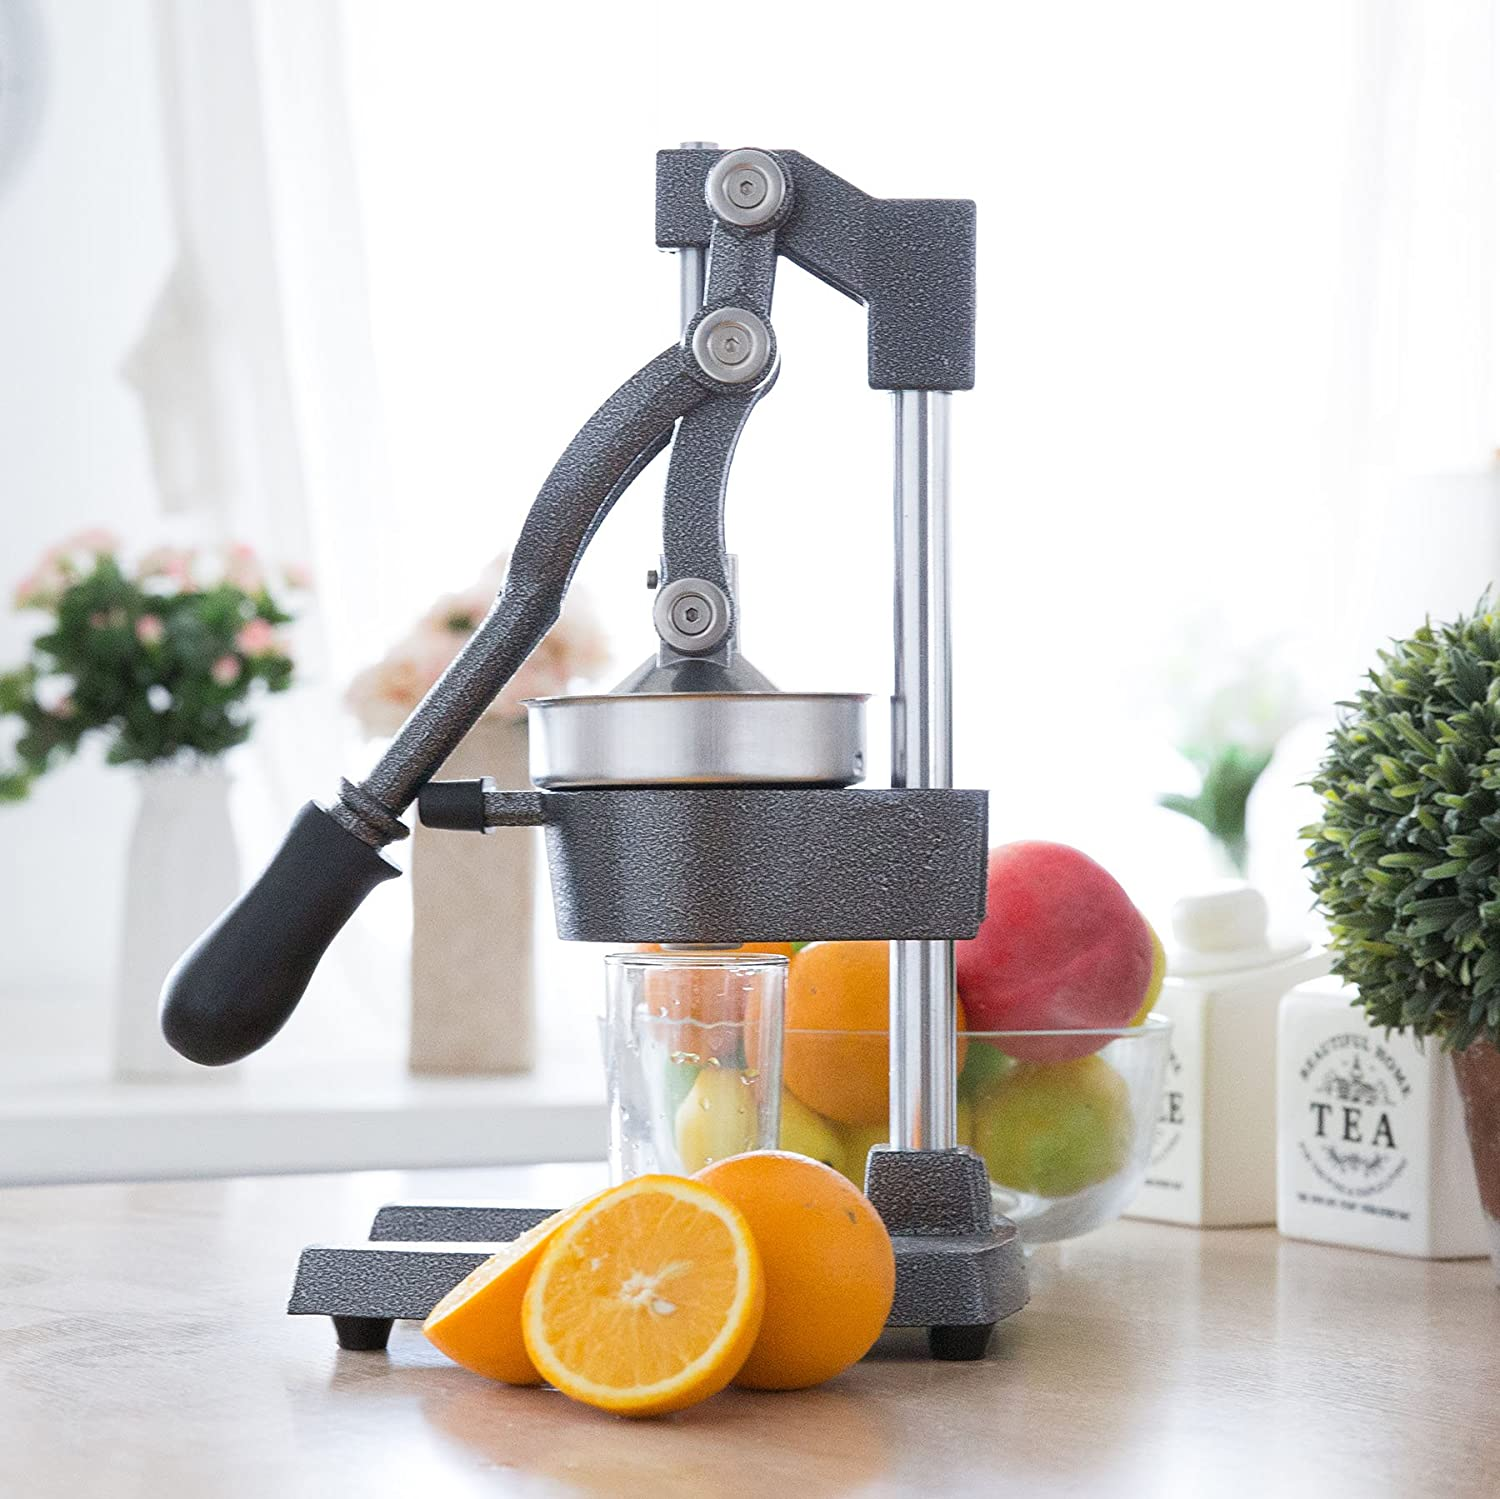 CO-Z Commercial Grade Citrus Juicer Hand Press Manual Fruit Juicer